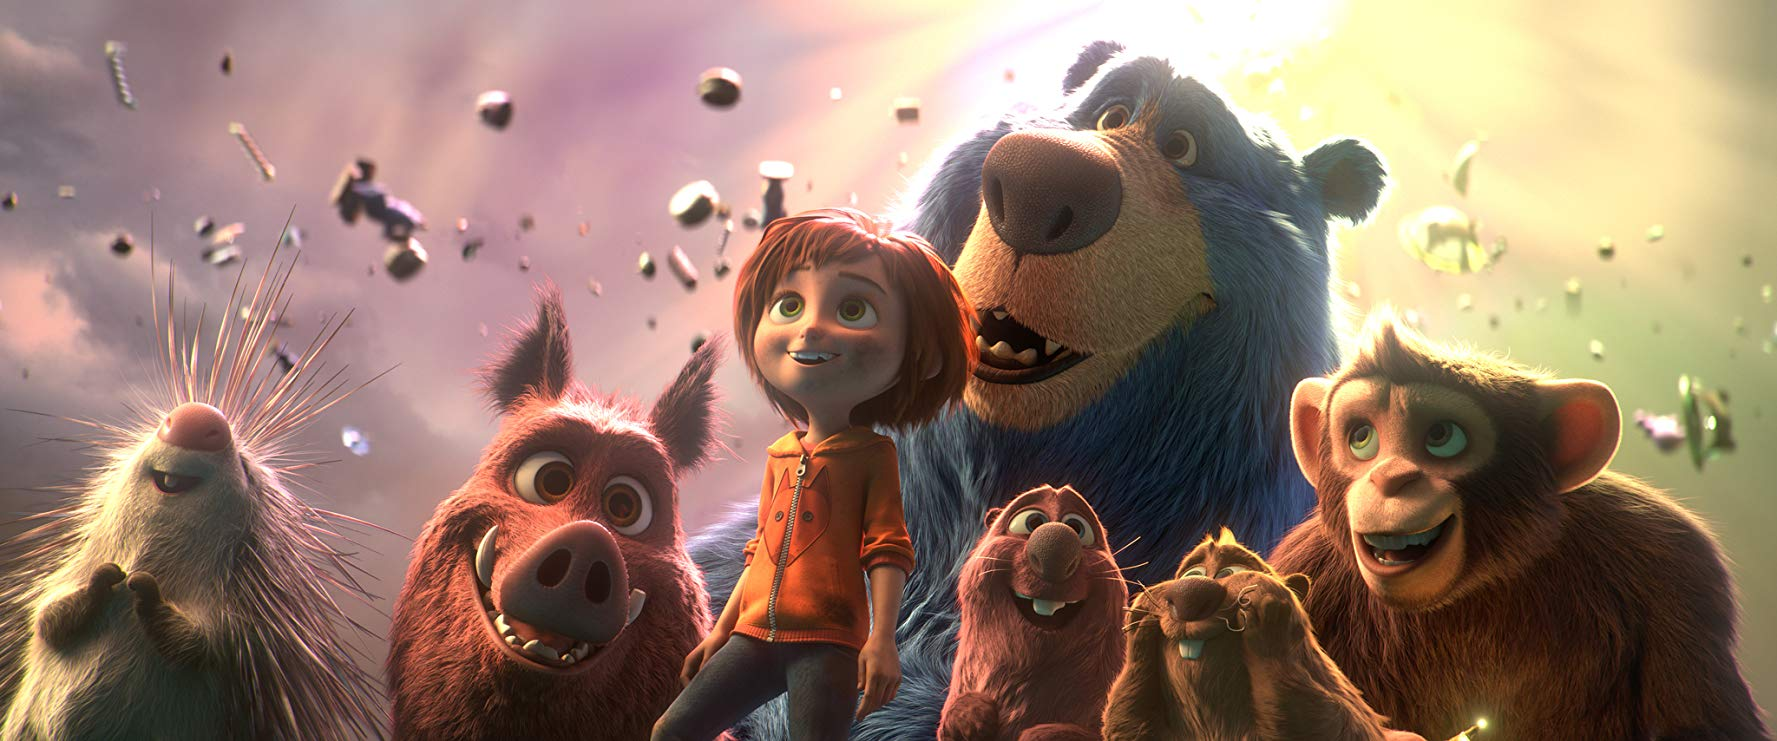 Wonder Park is out in cinemas April 8th